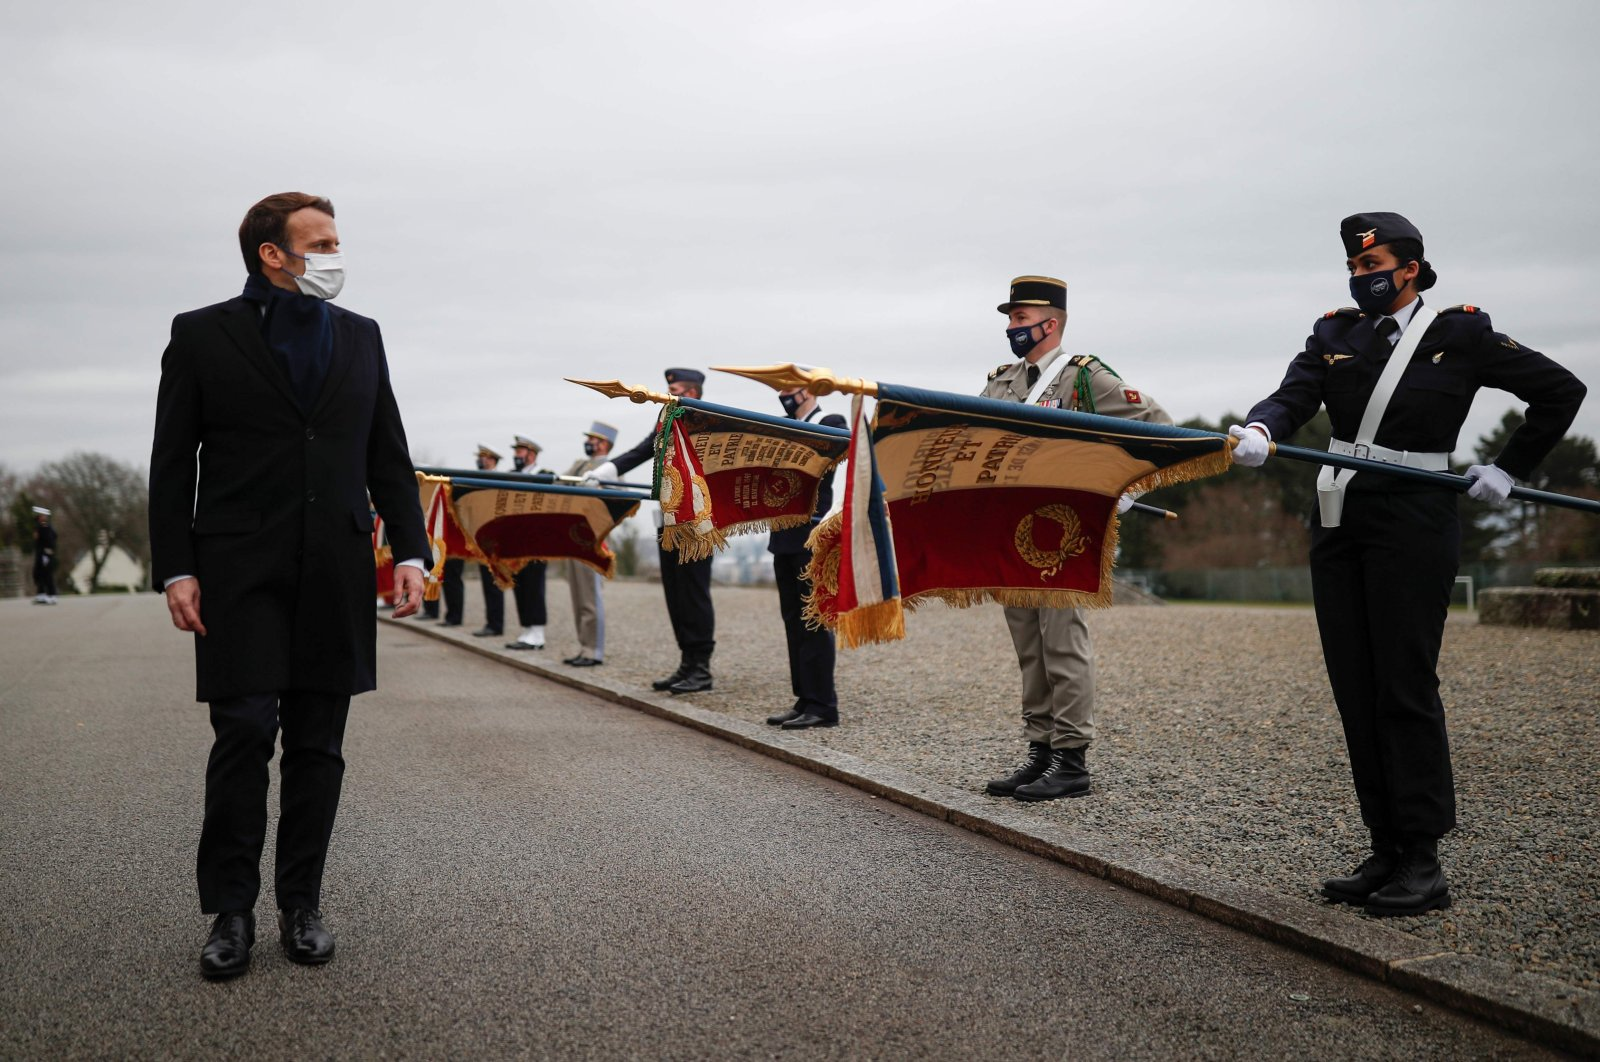 French President Emmanuel Macron observes troops during a military ceremony before the presentation of his New Year's wishes to the military forces in Brest, France, Jan. 19, 2021. (AFP Photo)